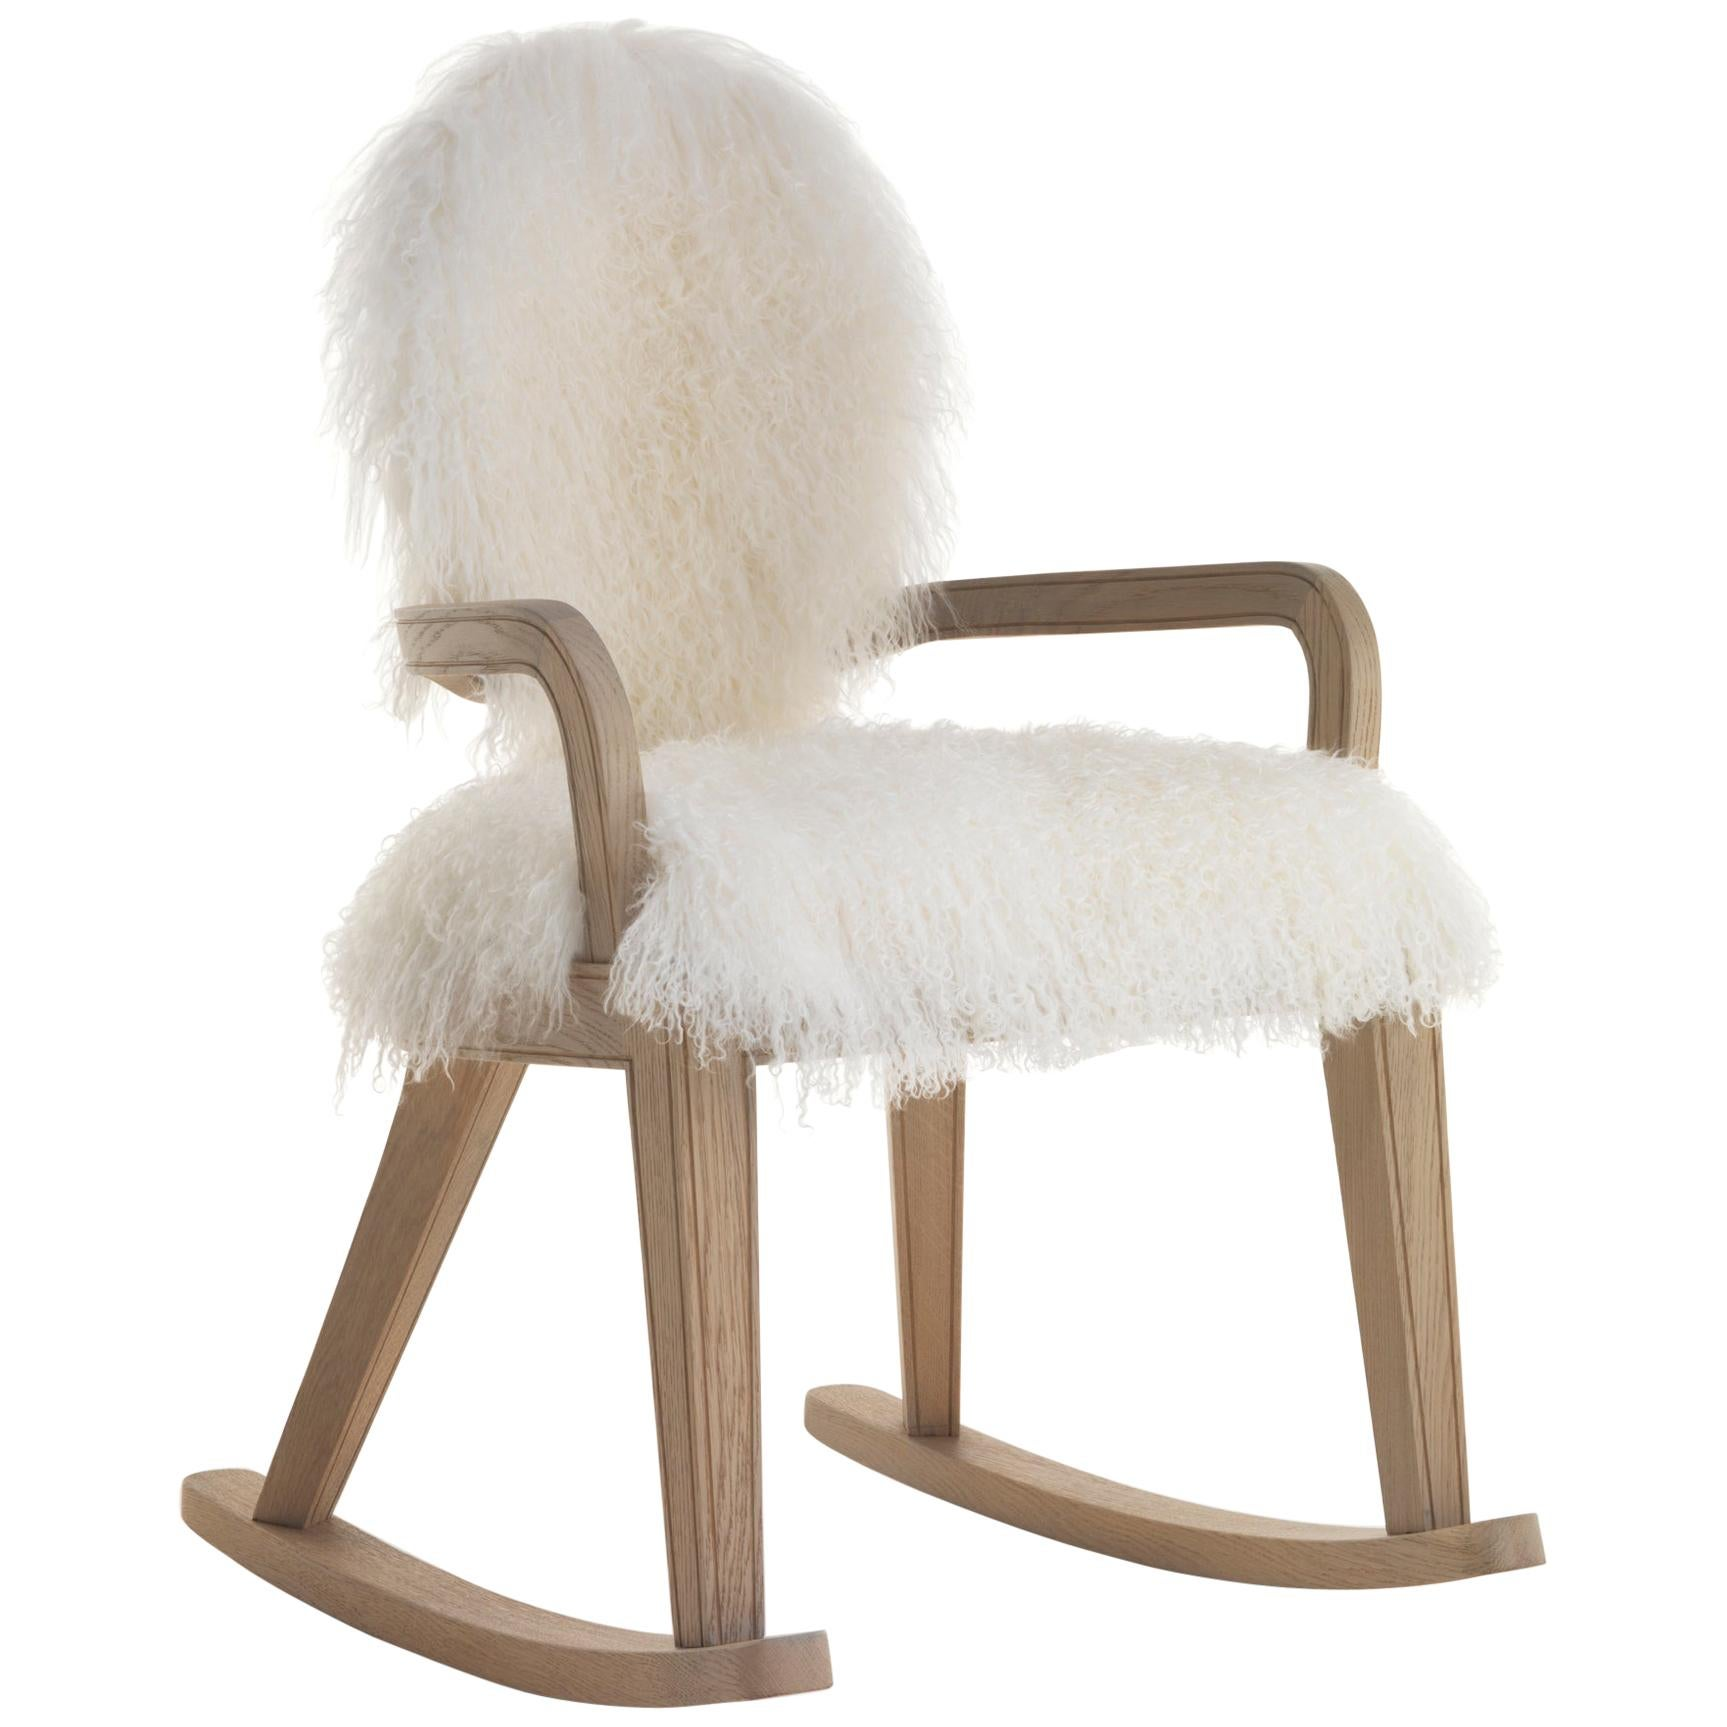 Monarch Rocking Chair in Natural Oak Finish with Lamb